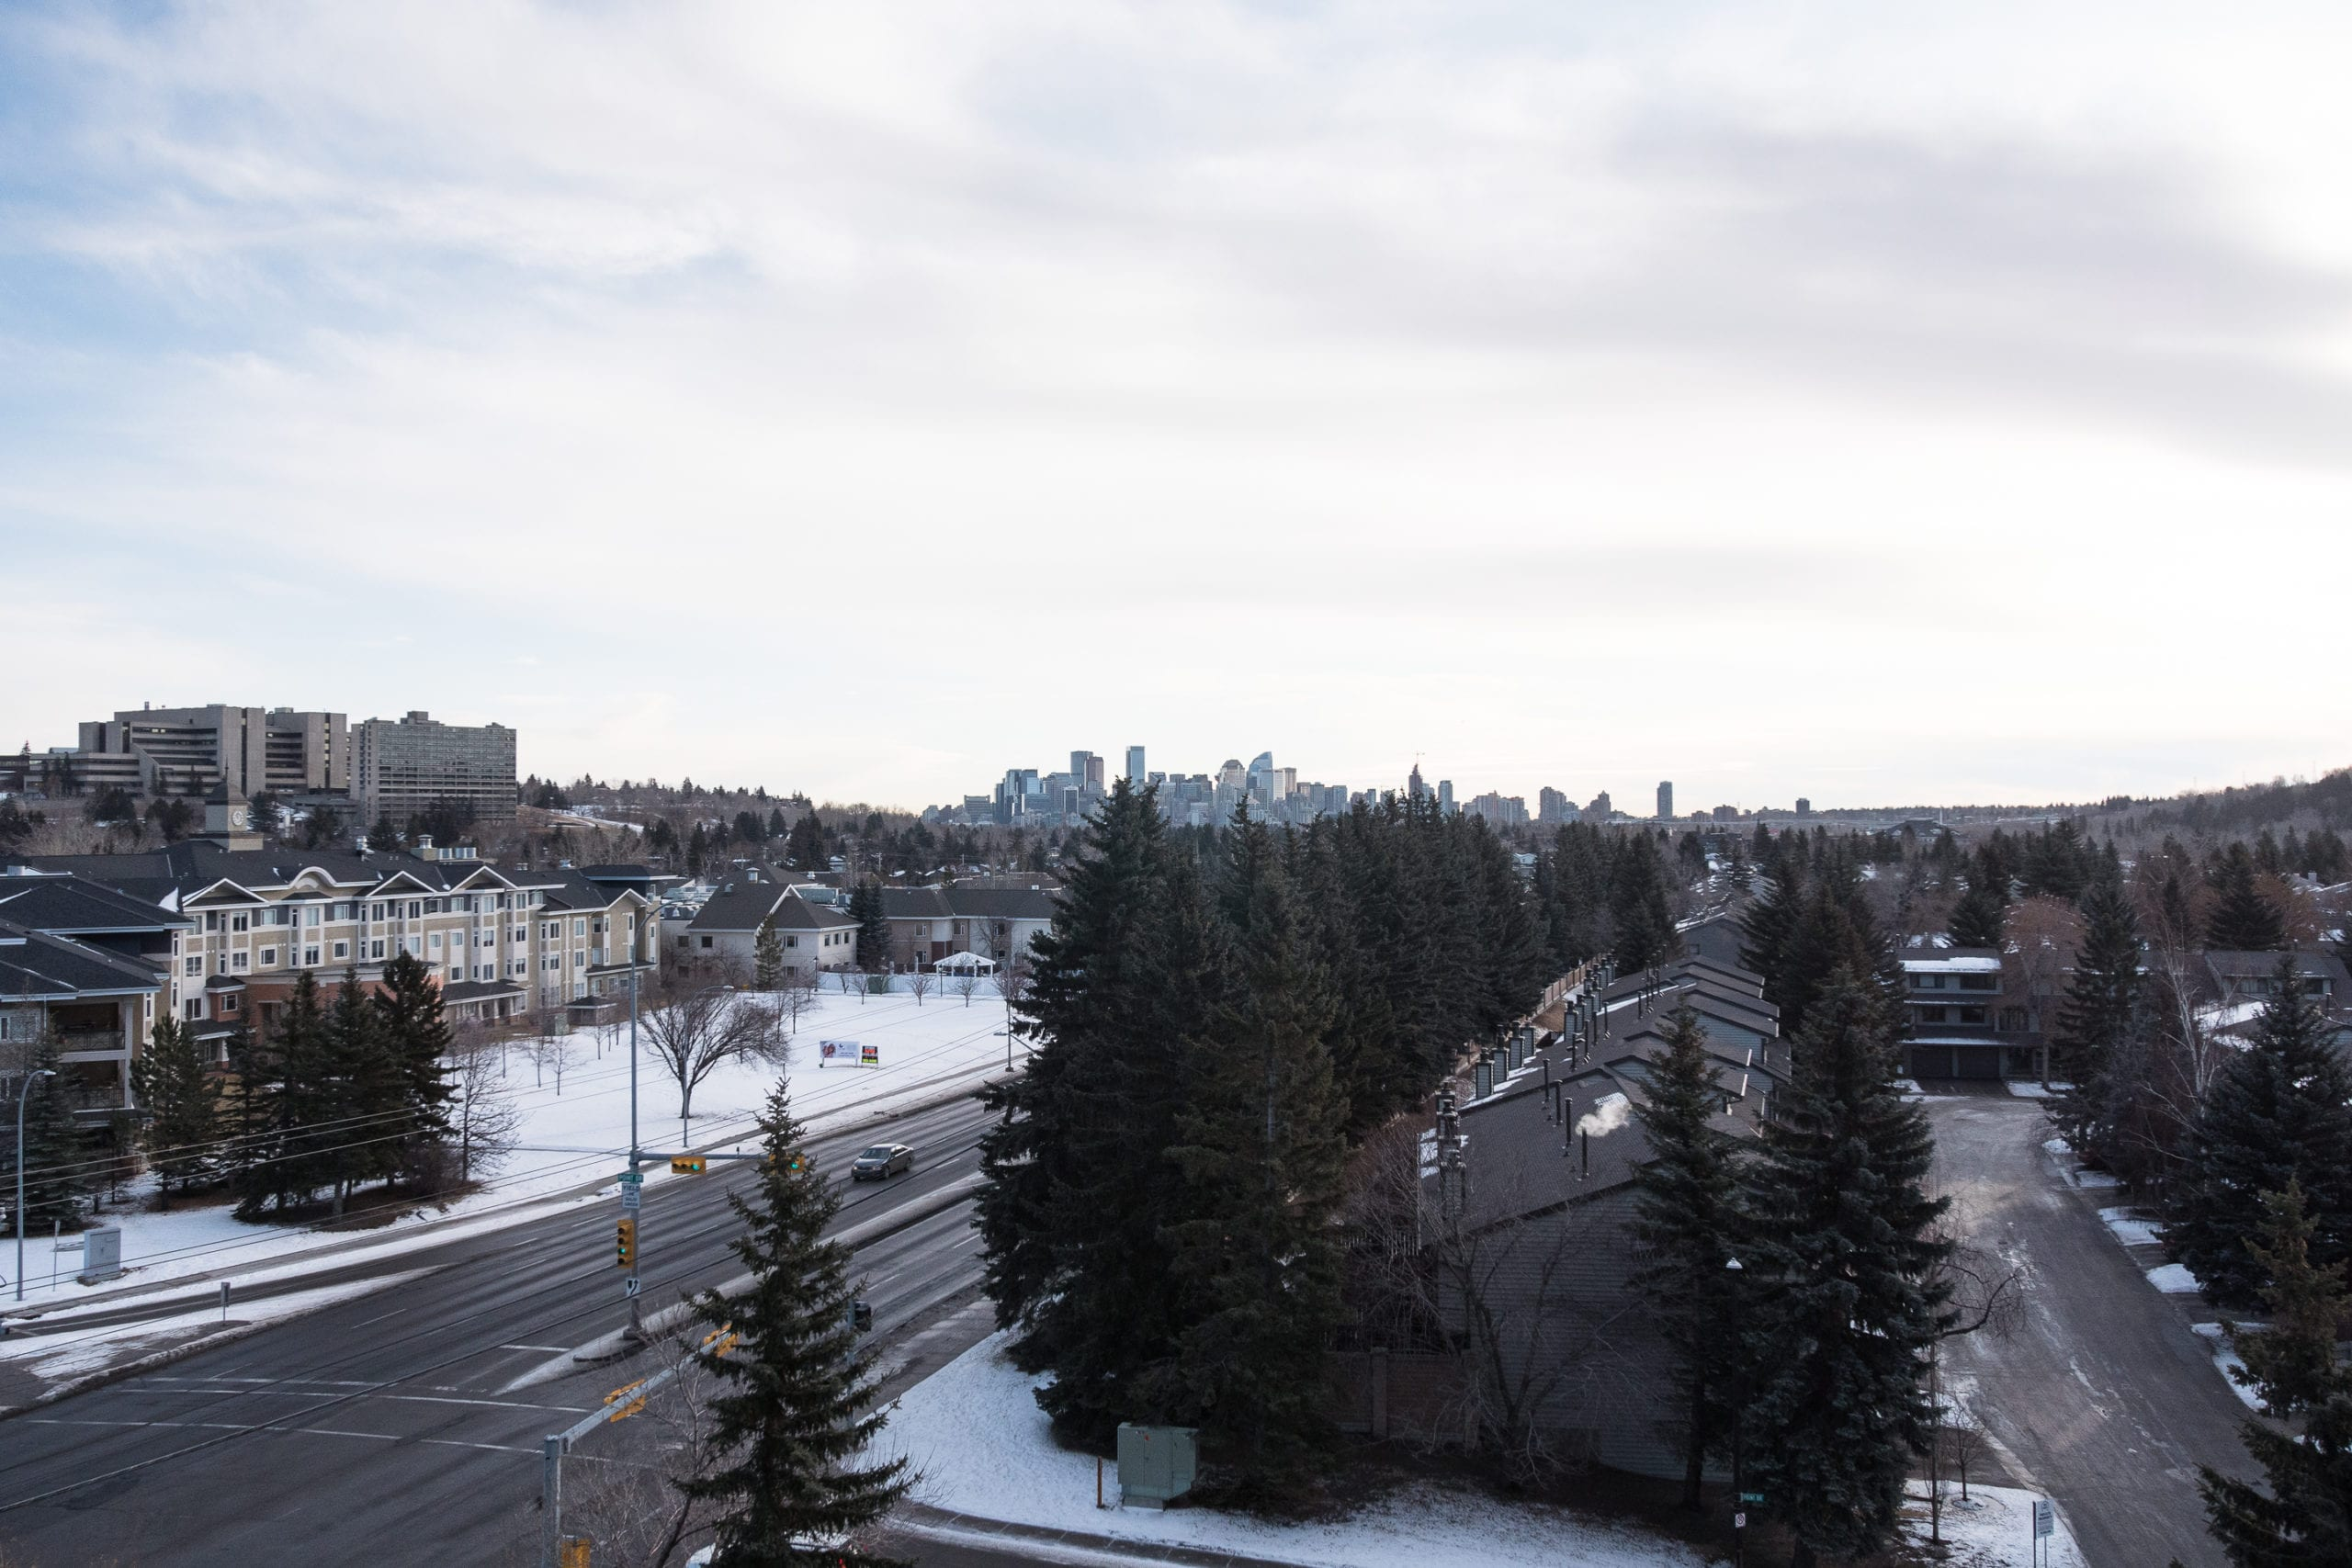 Hello Gorgeous - #705-145 point drive NW, Calgary AB - Tara Molina Real Estate (14 of 45)